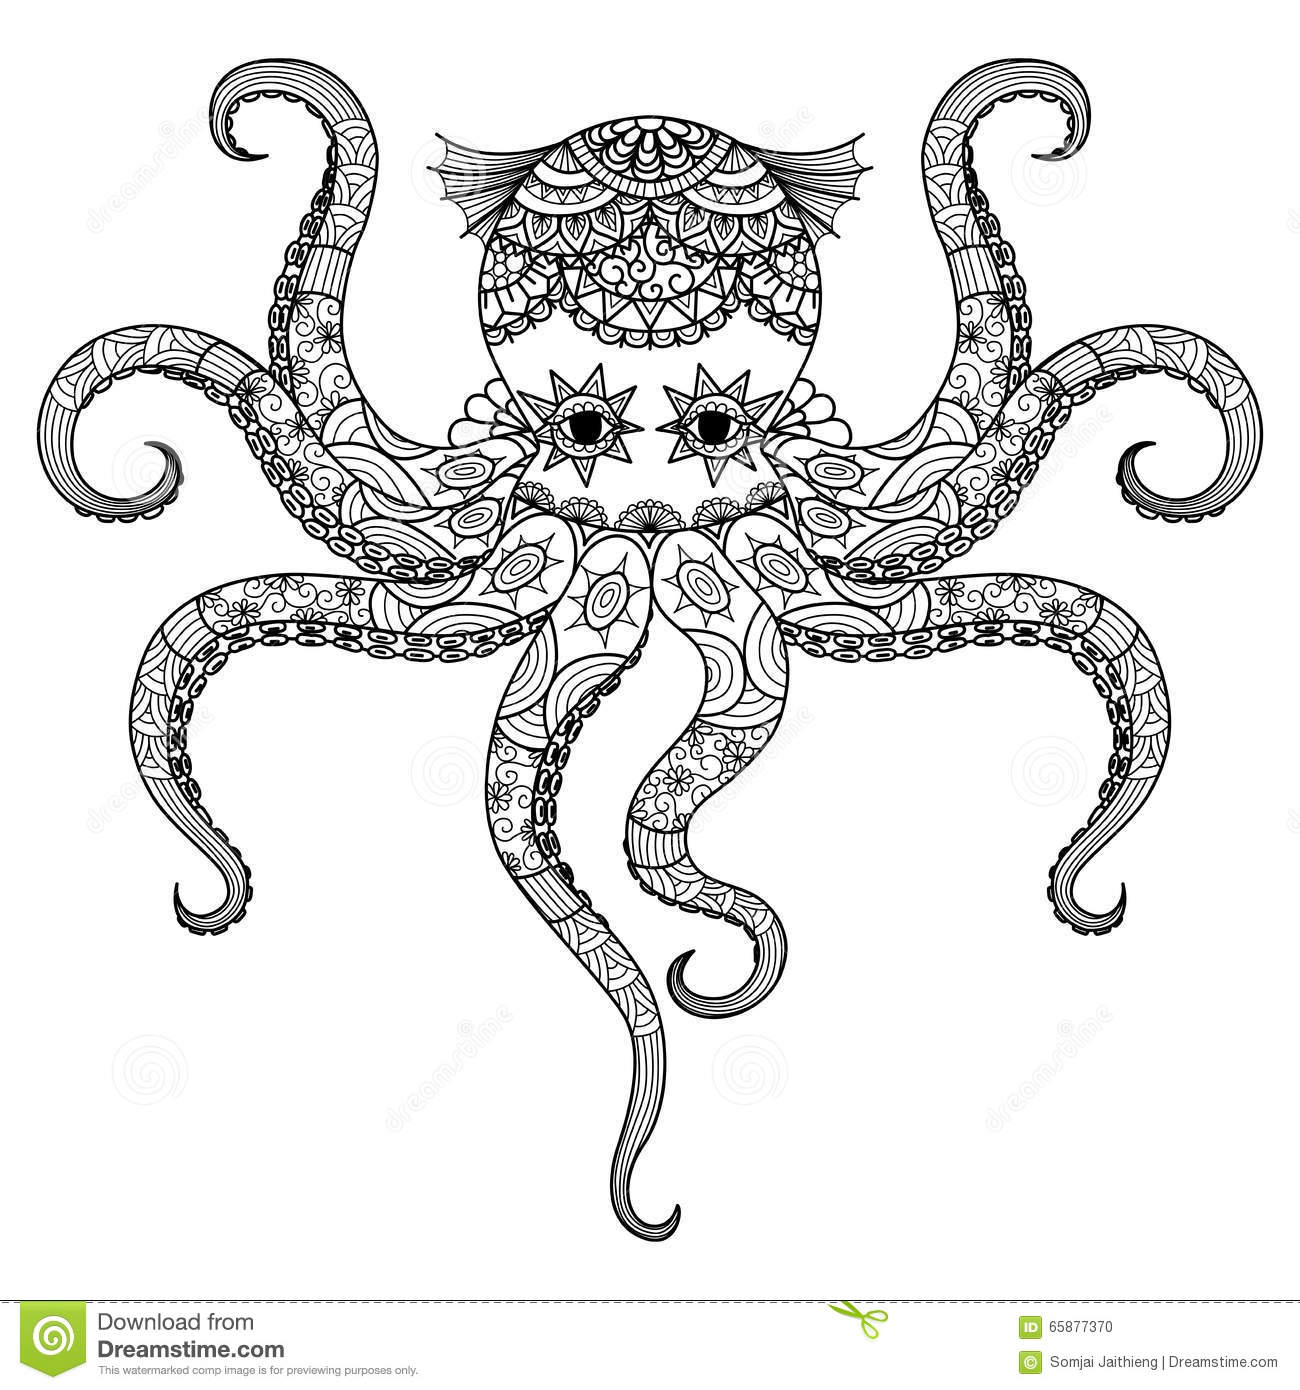 Drawing Octopus Zentangle Design For Coloring Book For Adult Tattoo T Shirt Design And So On